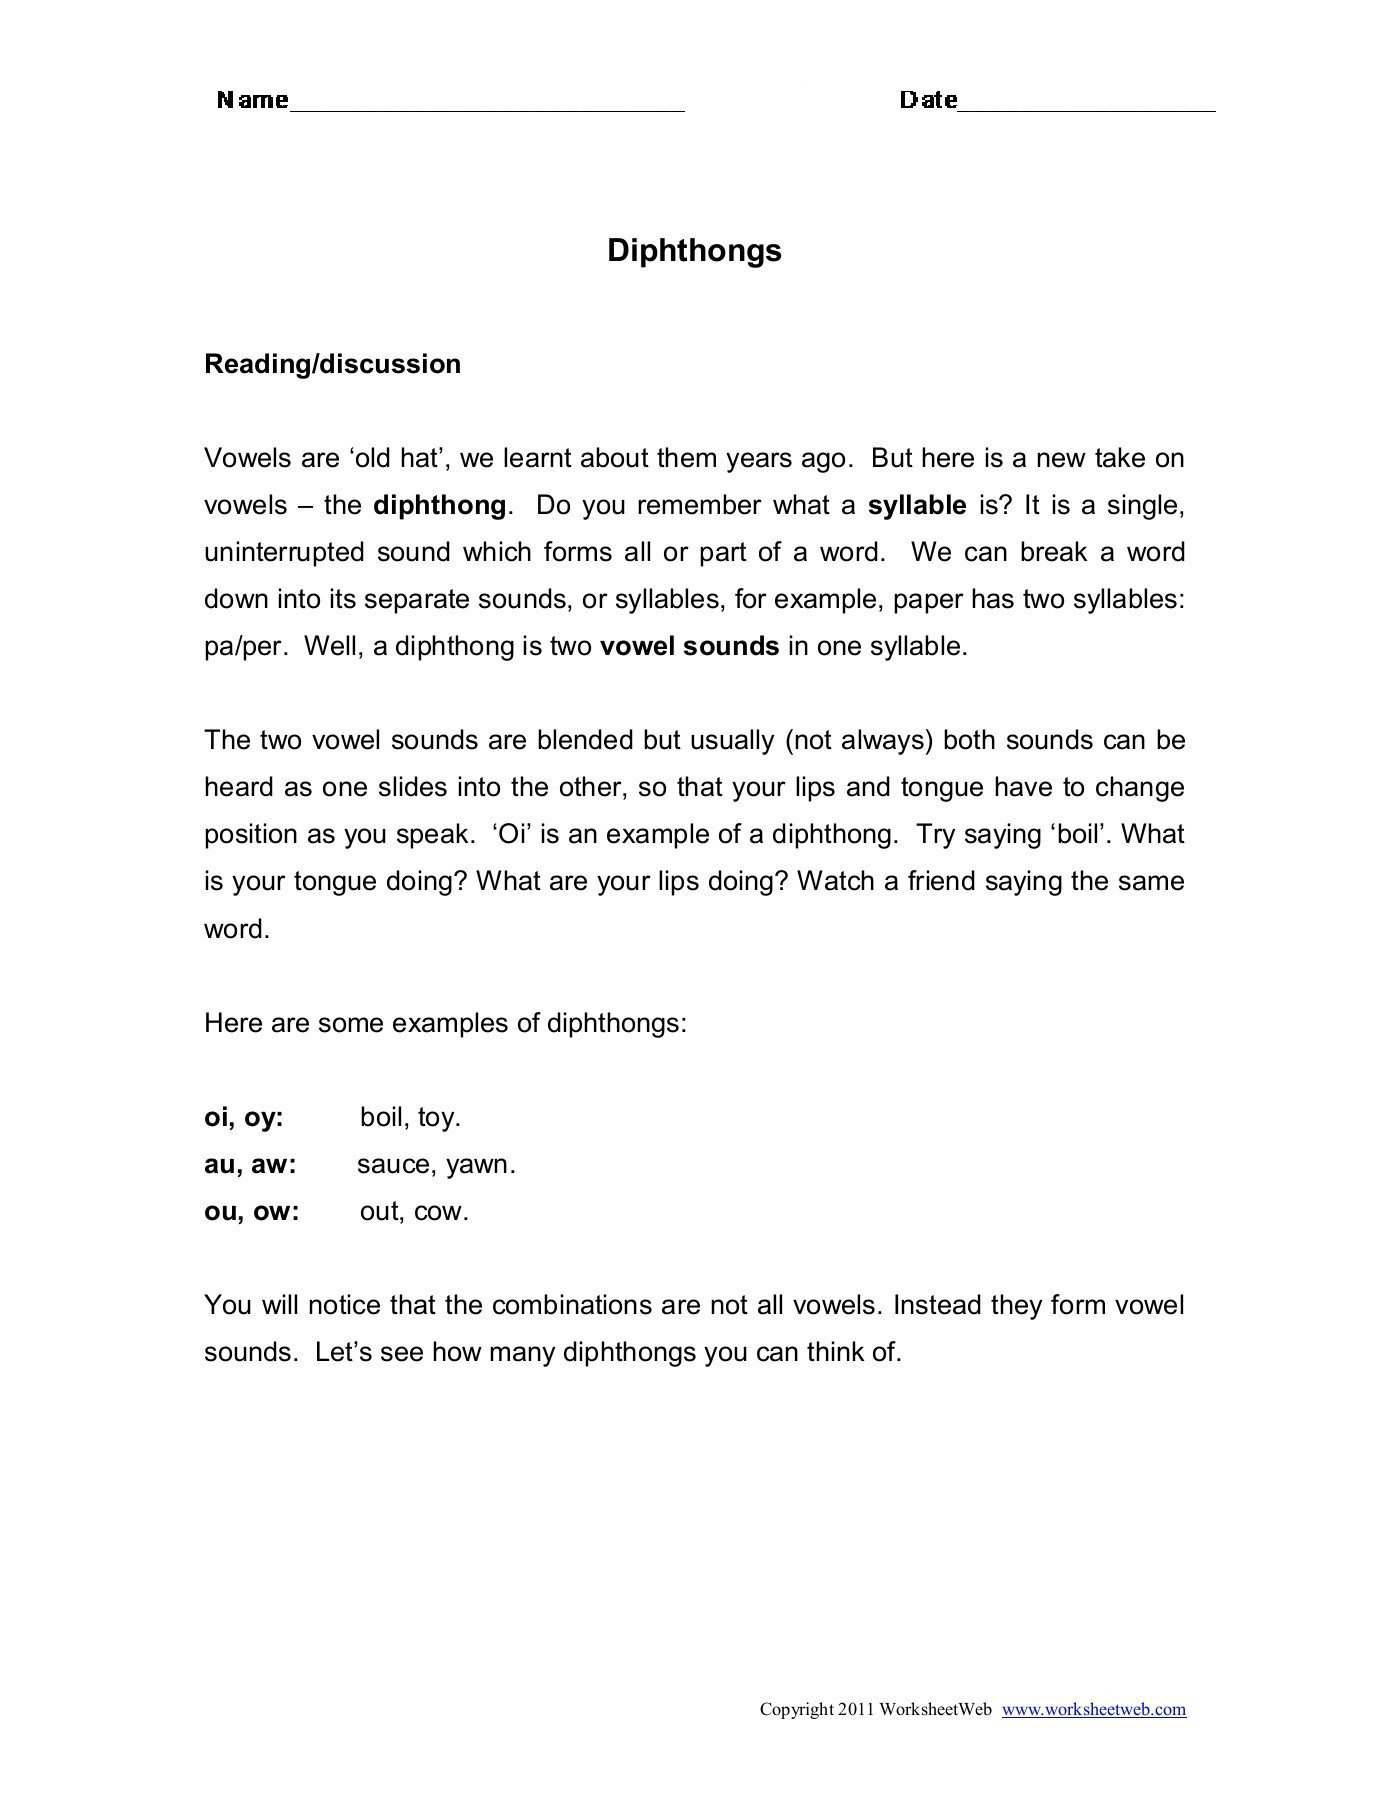 Diphthongs Oi Oy Worksheets Language Dipthongs Worksheet Web Worksheets Lessons